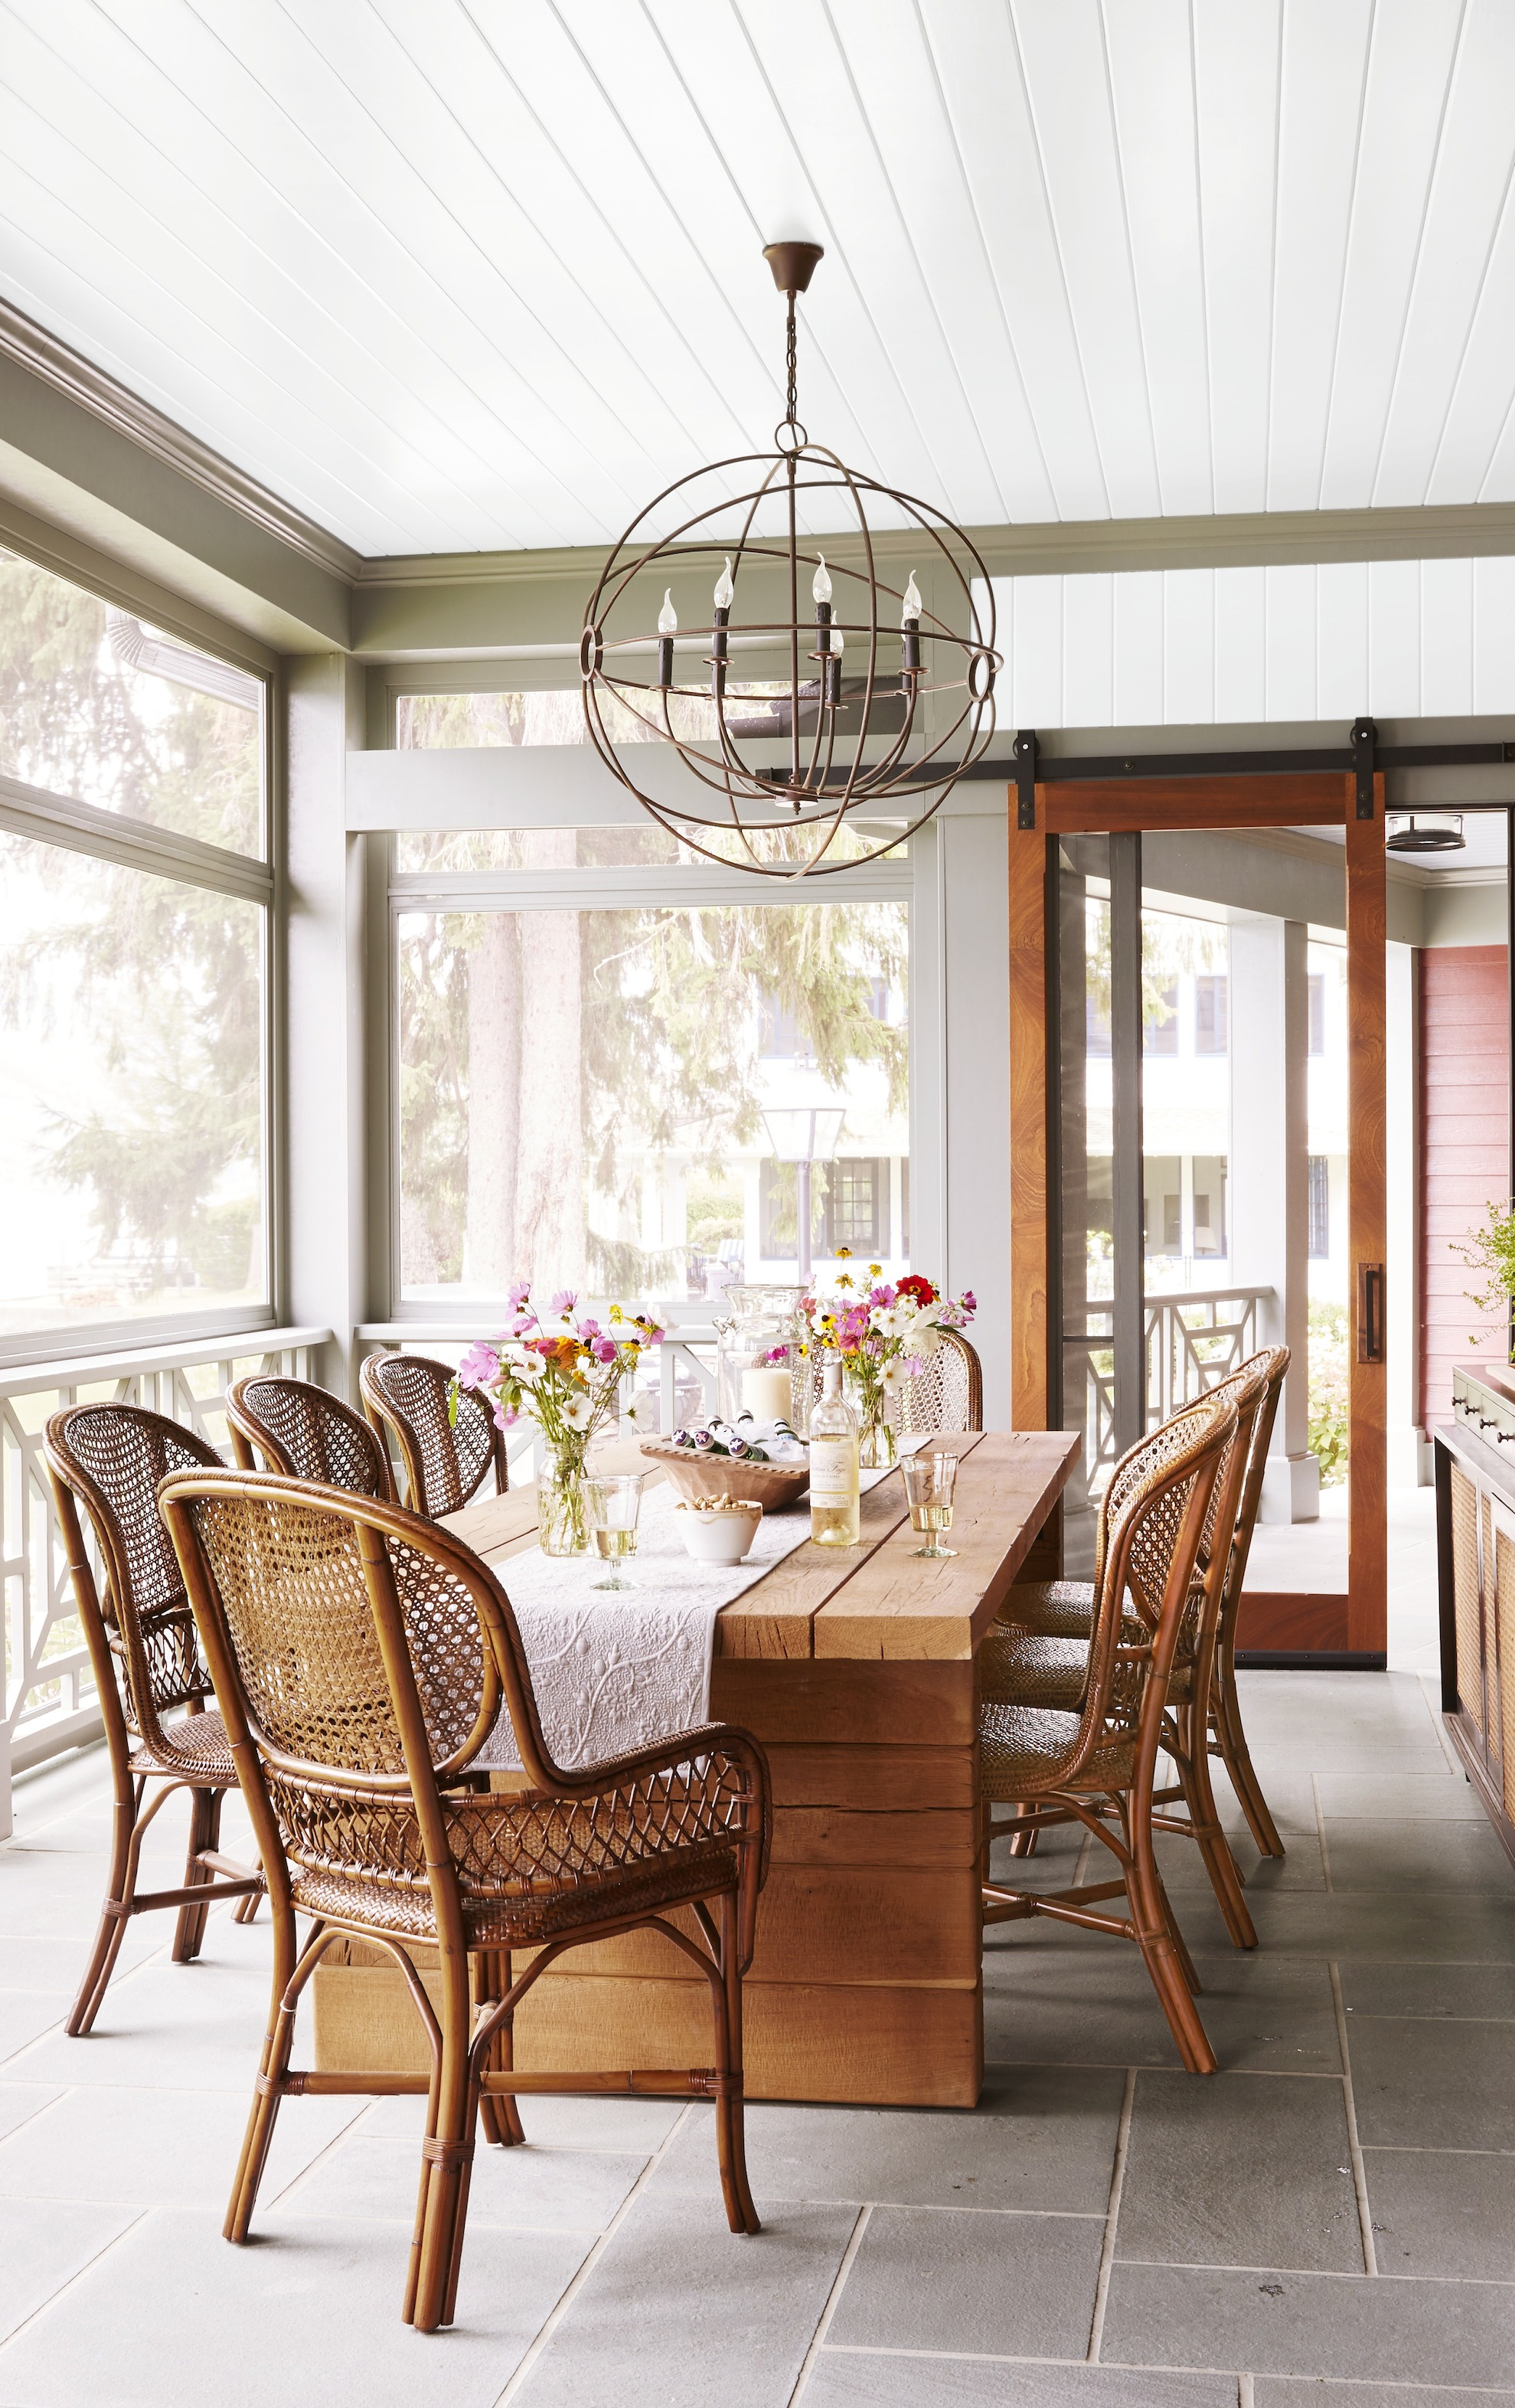 Sunroom Dining Room Beauteous 10 Sunroom Decorating Ideas  Best Designs For Sun Rooms Decorating Design